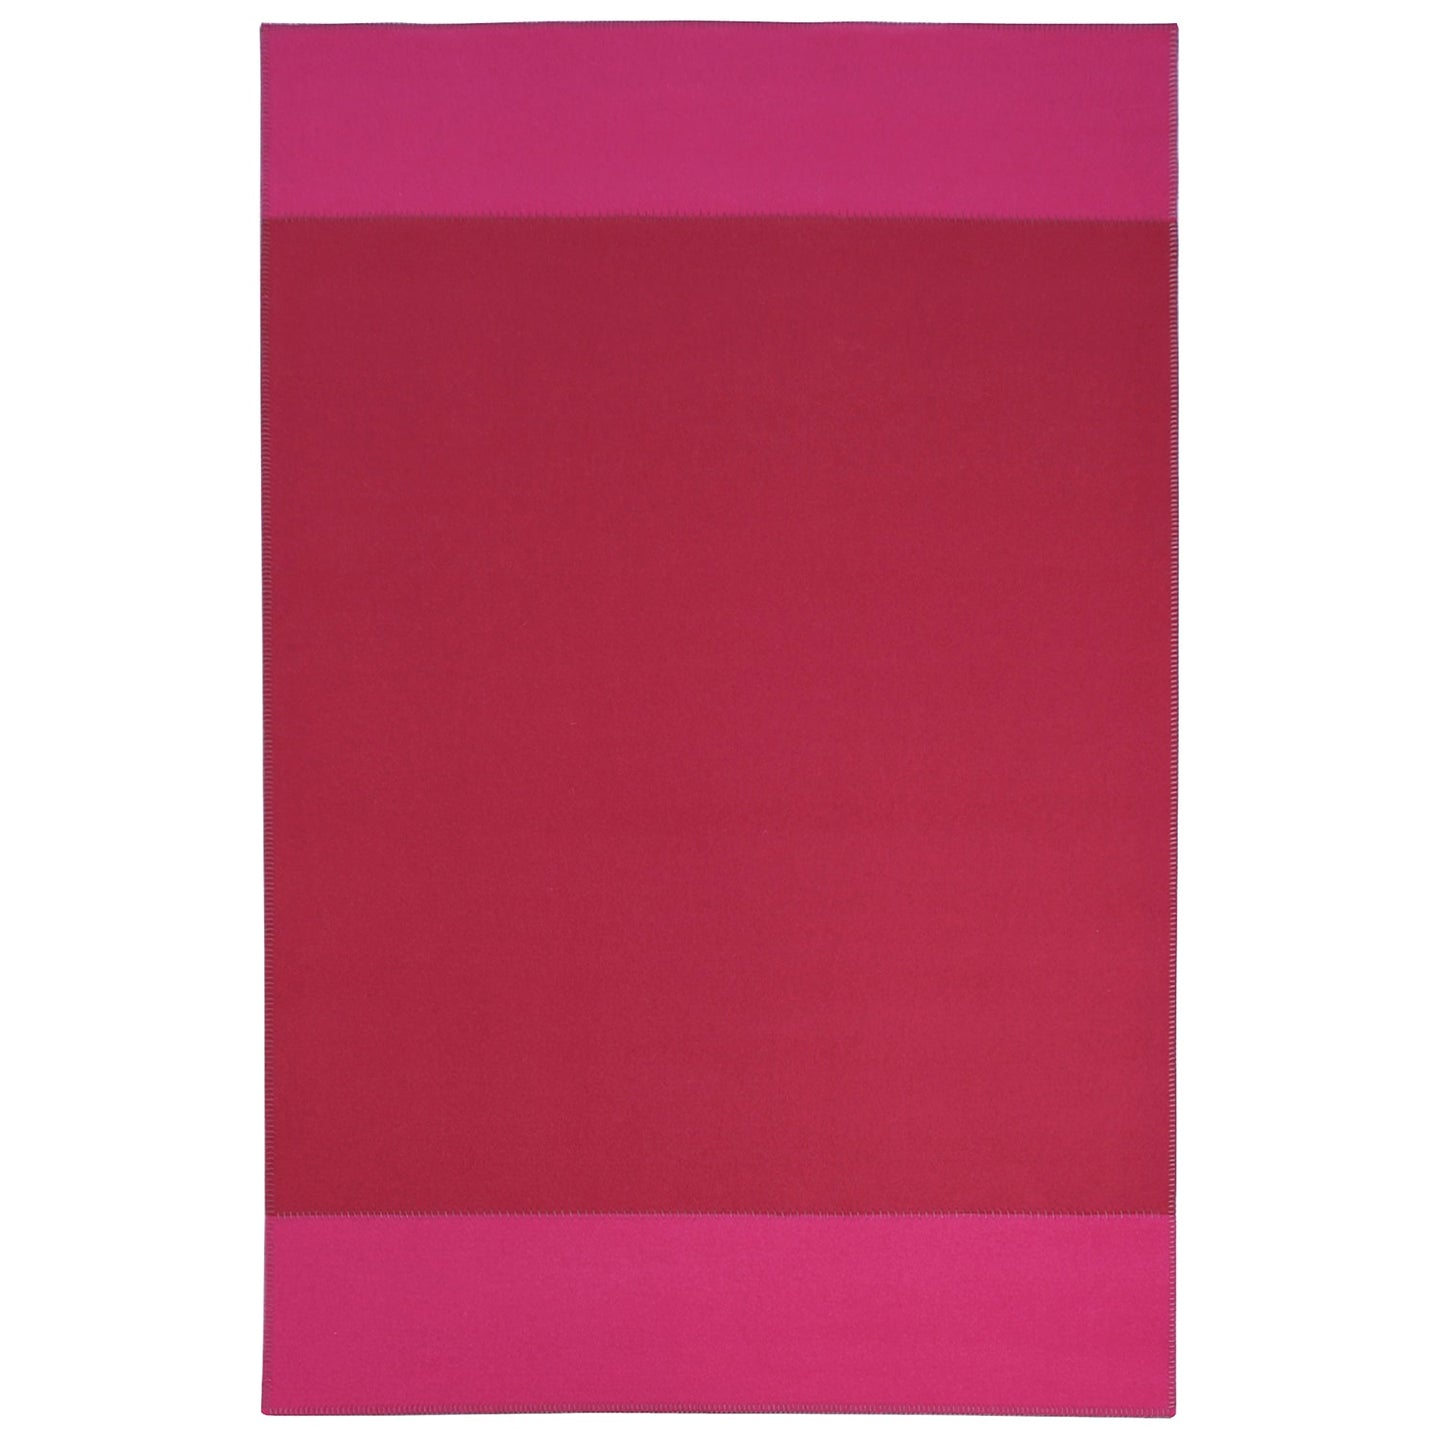 Hugo Tapis Rug, Raspberry & Bright Pink rug by Roger Oates for AUTHOR